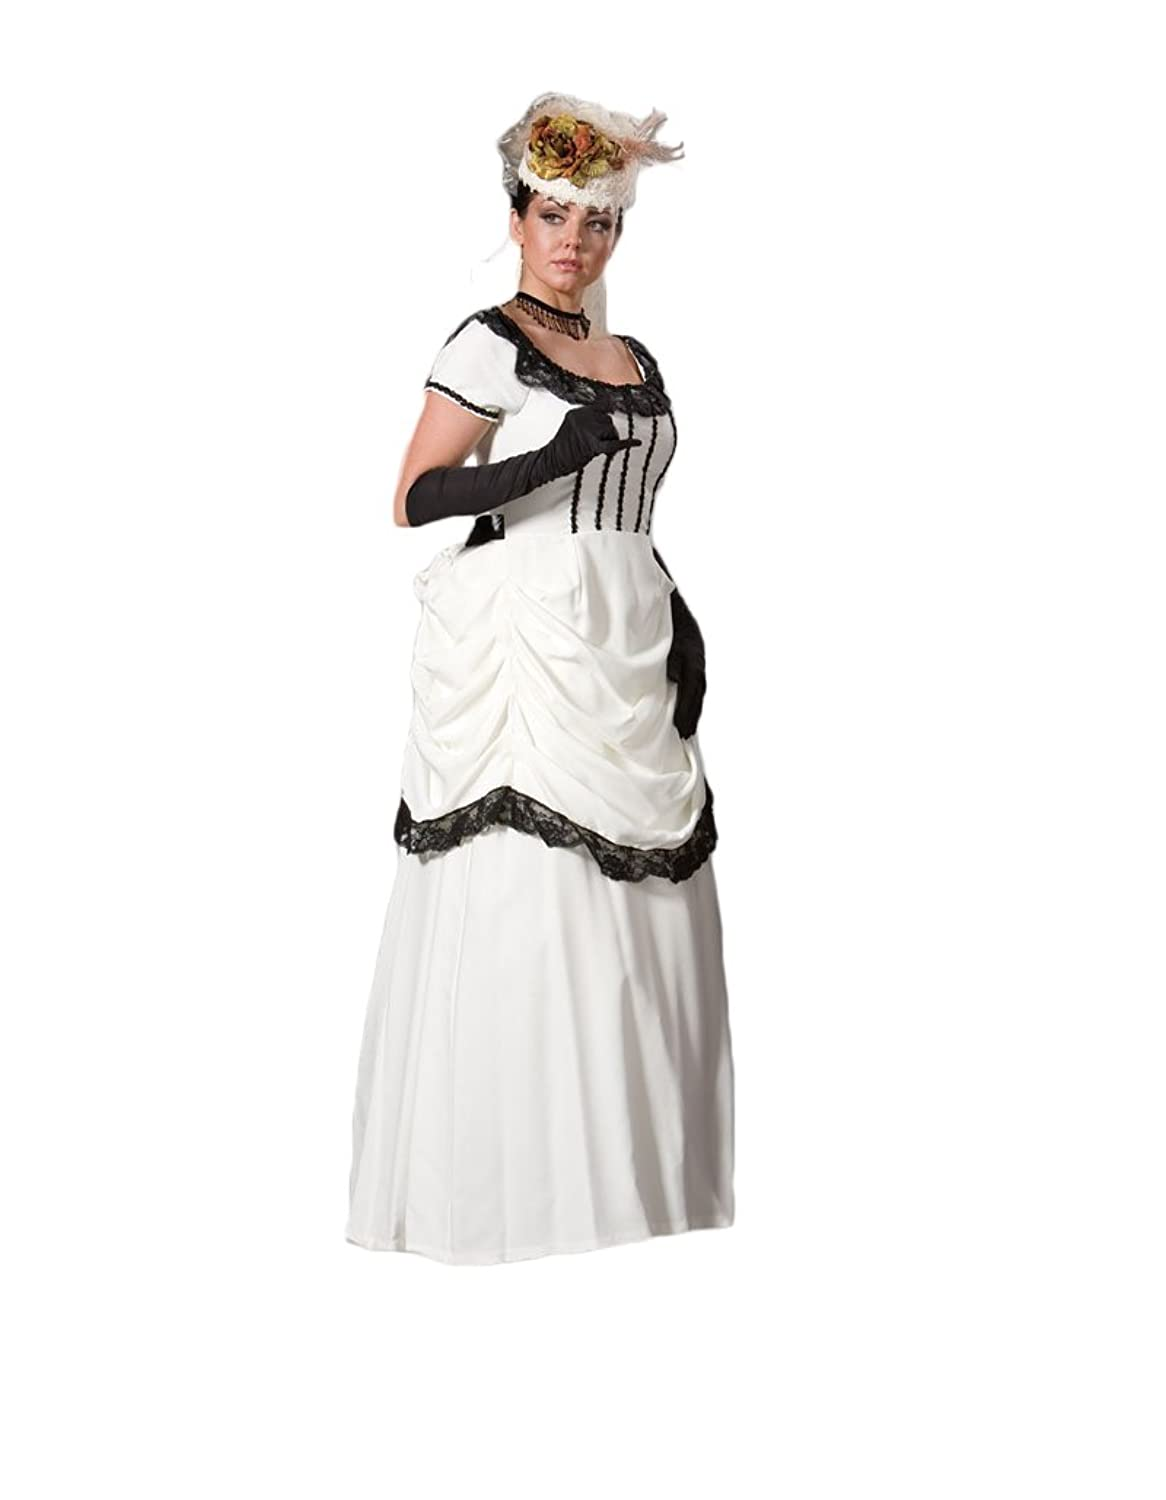 Victorian Costume Dresses & Skirts for Sale Womens White Victorian Emma Dress Theater Costume $239.99 AT vintagedancer.com